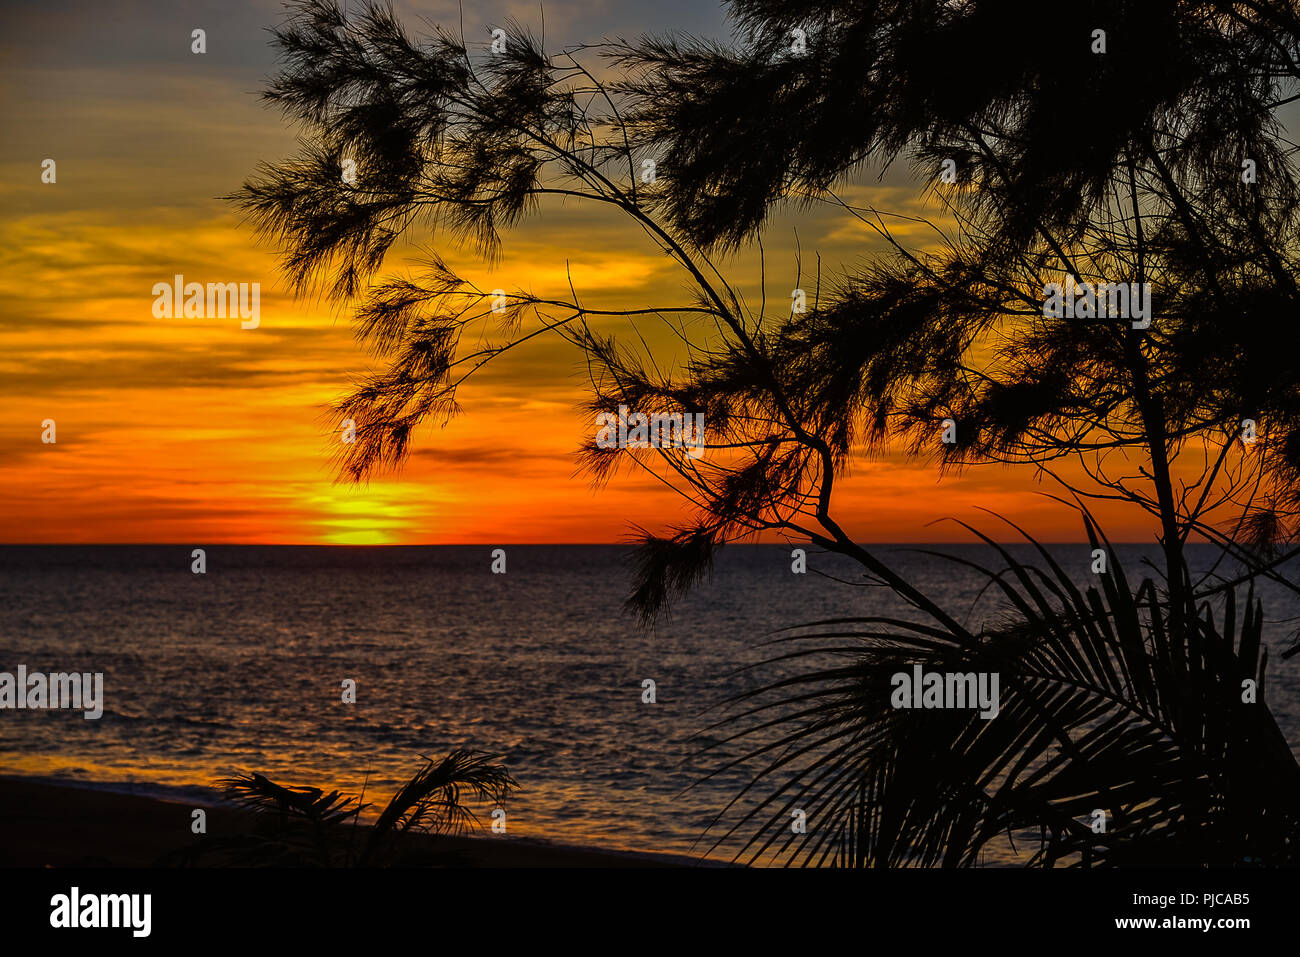 Sunset over West Philippine Sea - View from Ilocos Sur, Luzon, Philippines - Stock Image